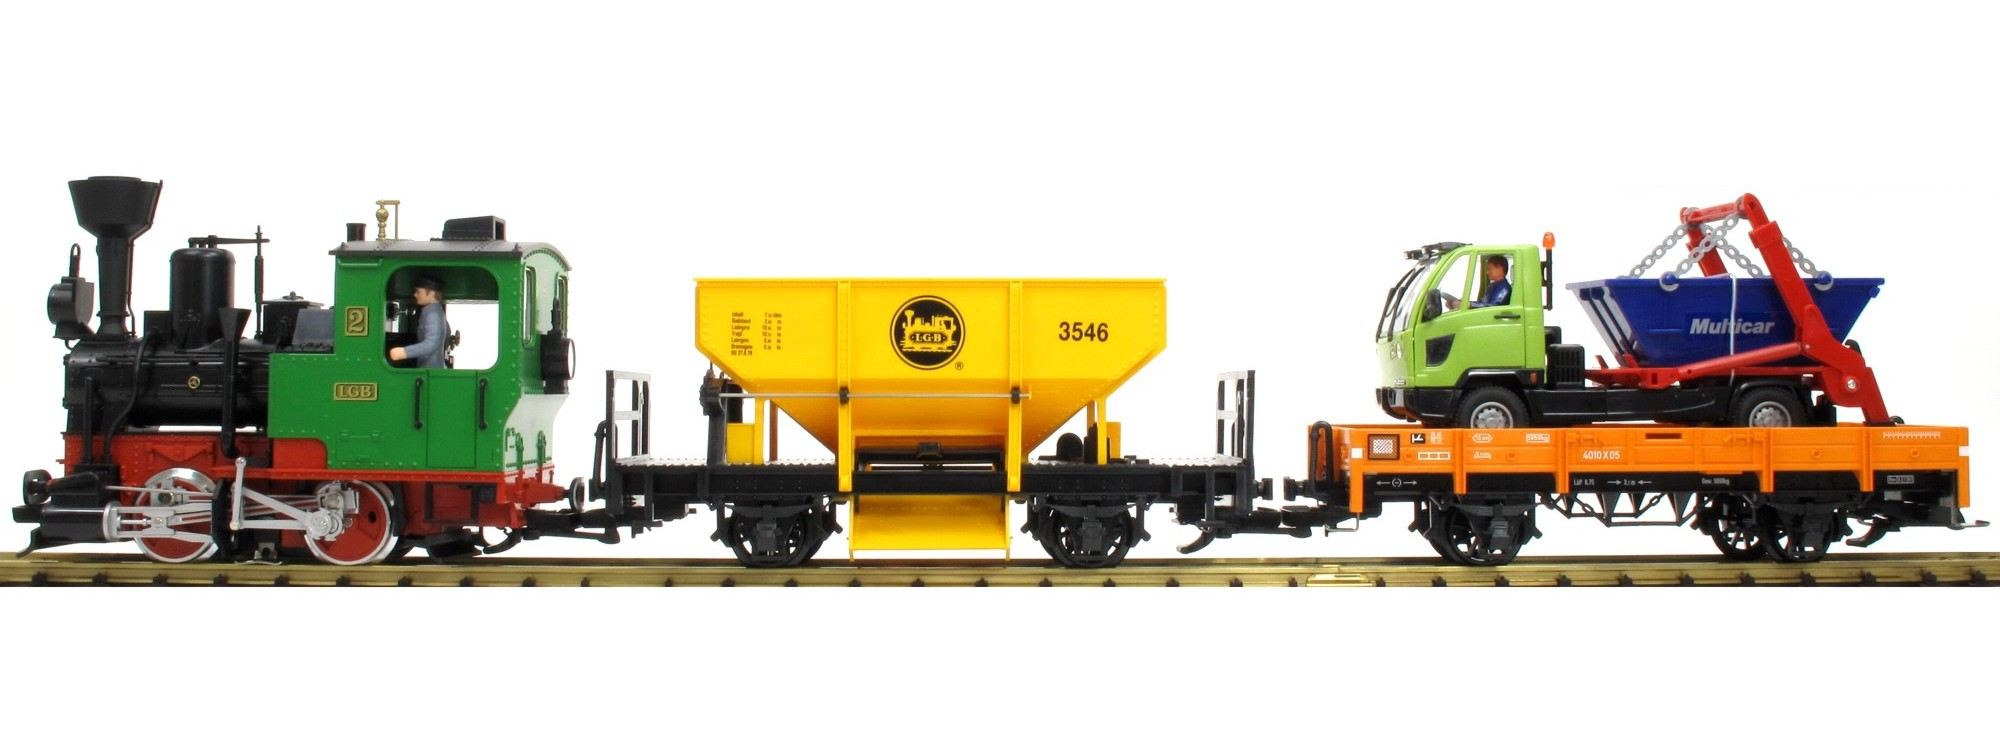 LGB70403 Work train starter set